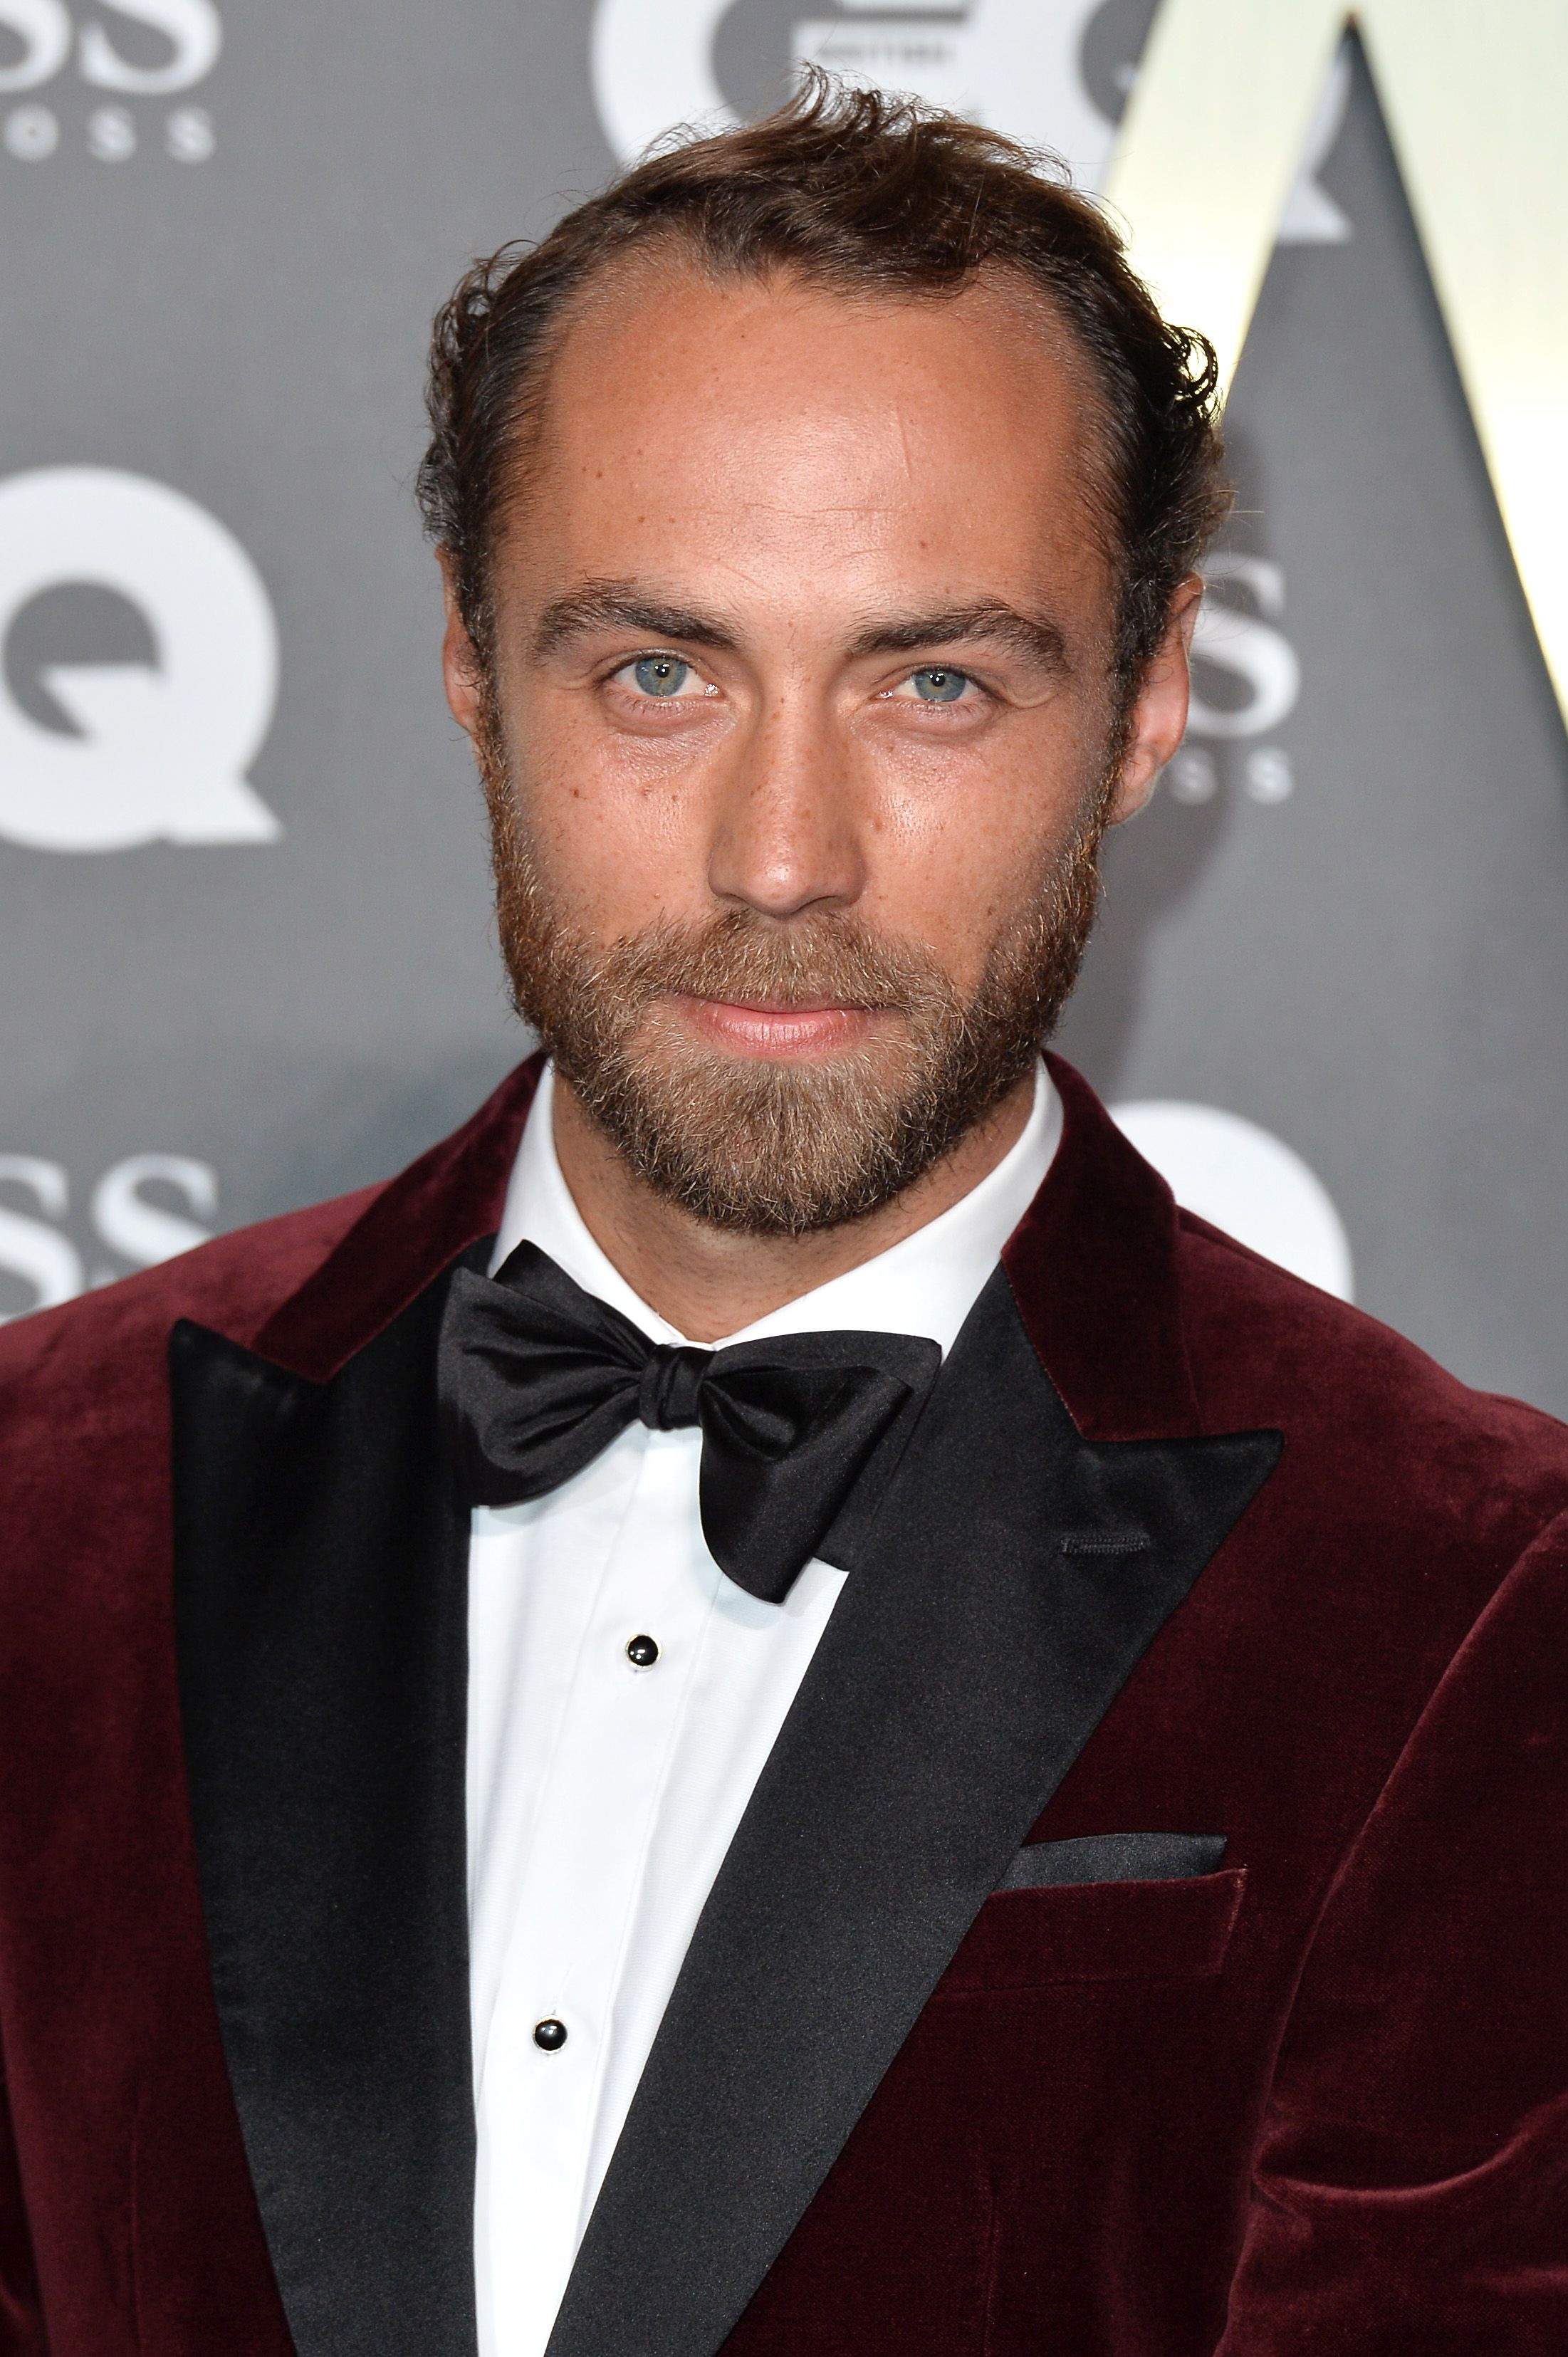 James Middleton at the GQ Men Of The Year Awards on September 03, 2019 in London, England | Photo: Getty Images